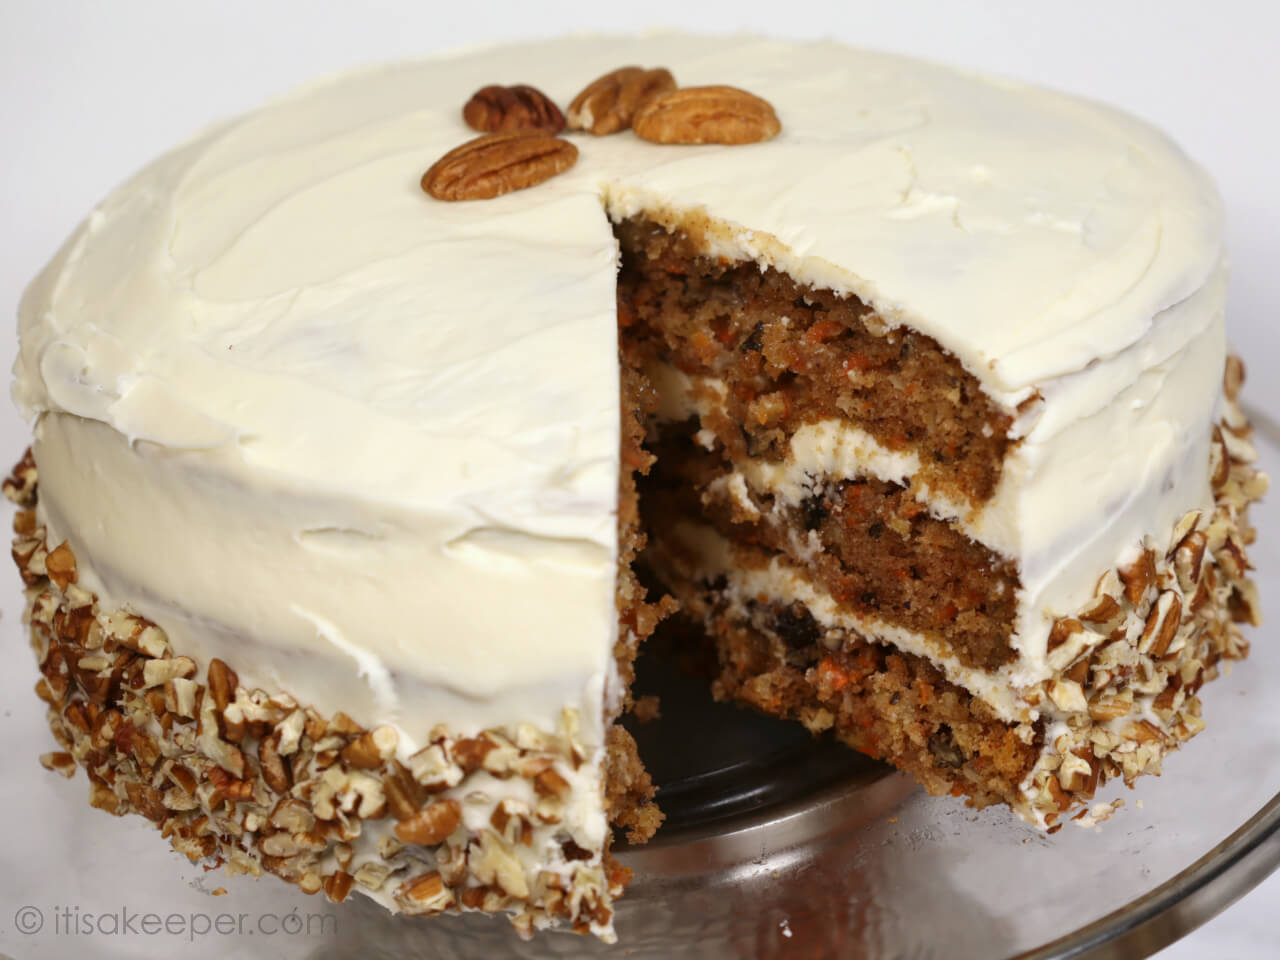 Homemade Carrot Cake Recipe - this is one of the BEST carrot cake recipes I have ever tried